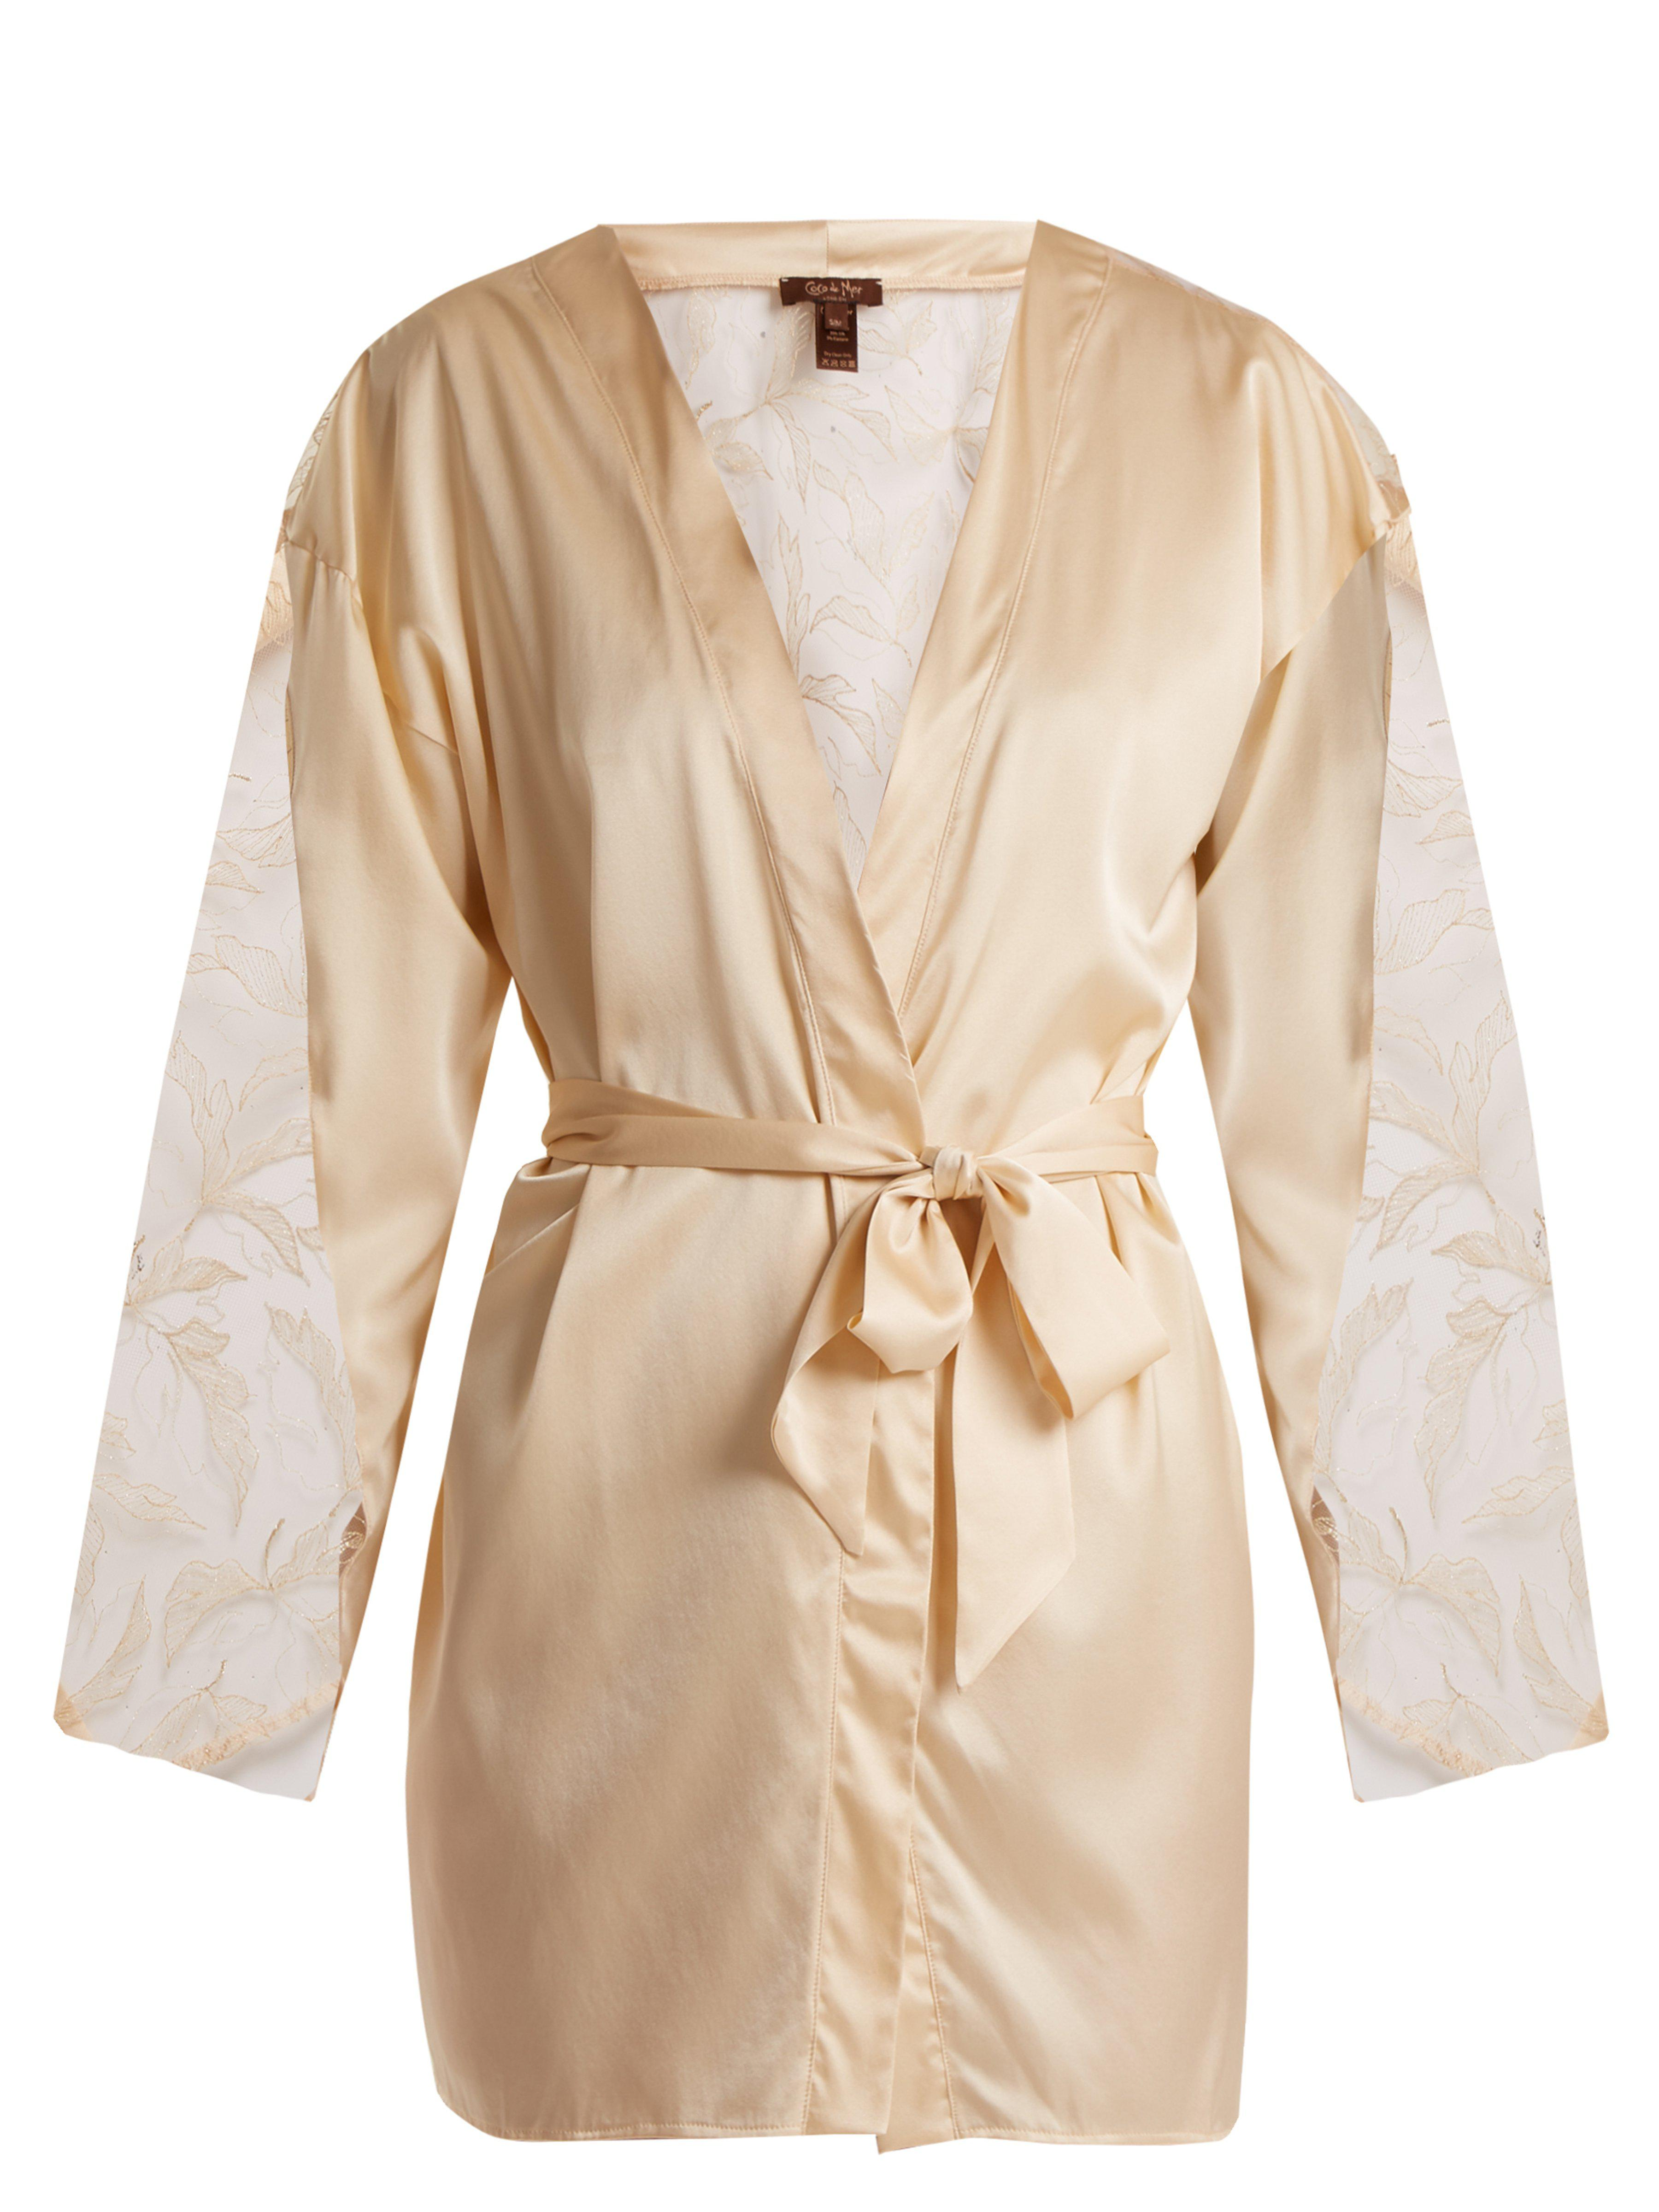 Coco De Mer Wonderland Lace Insert Silk Blend Robe in Natural - Lyst c8dae94ce